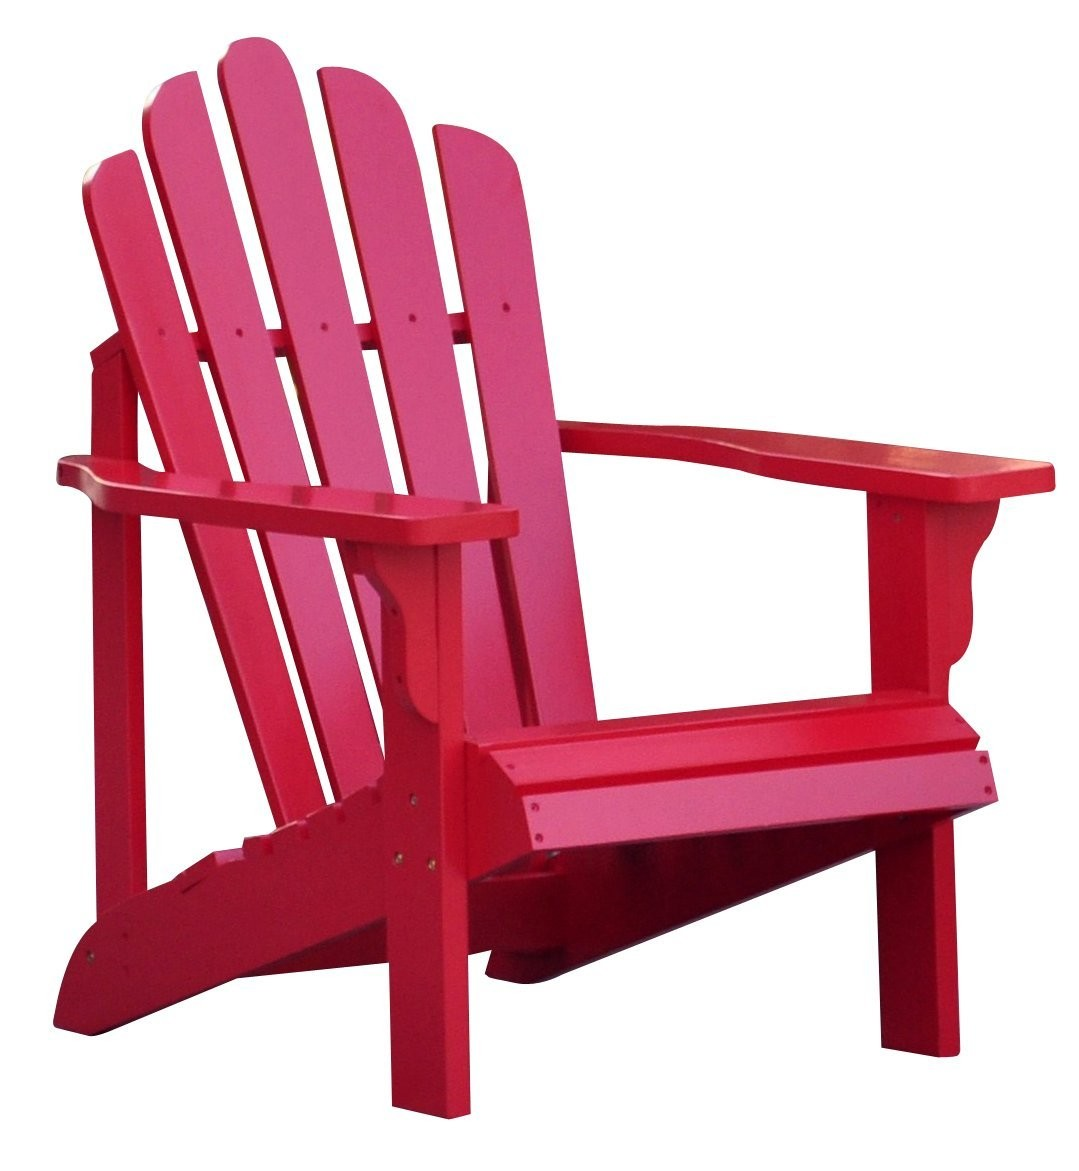 Factors To Consider Before Picking The Right Chair For Your Garden